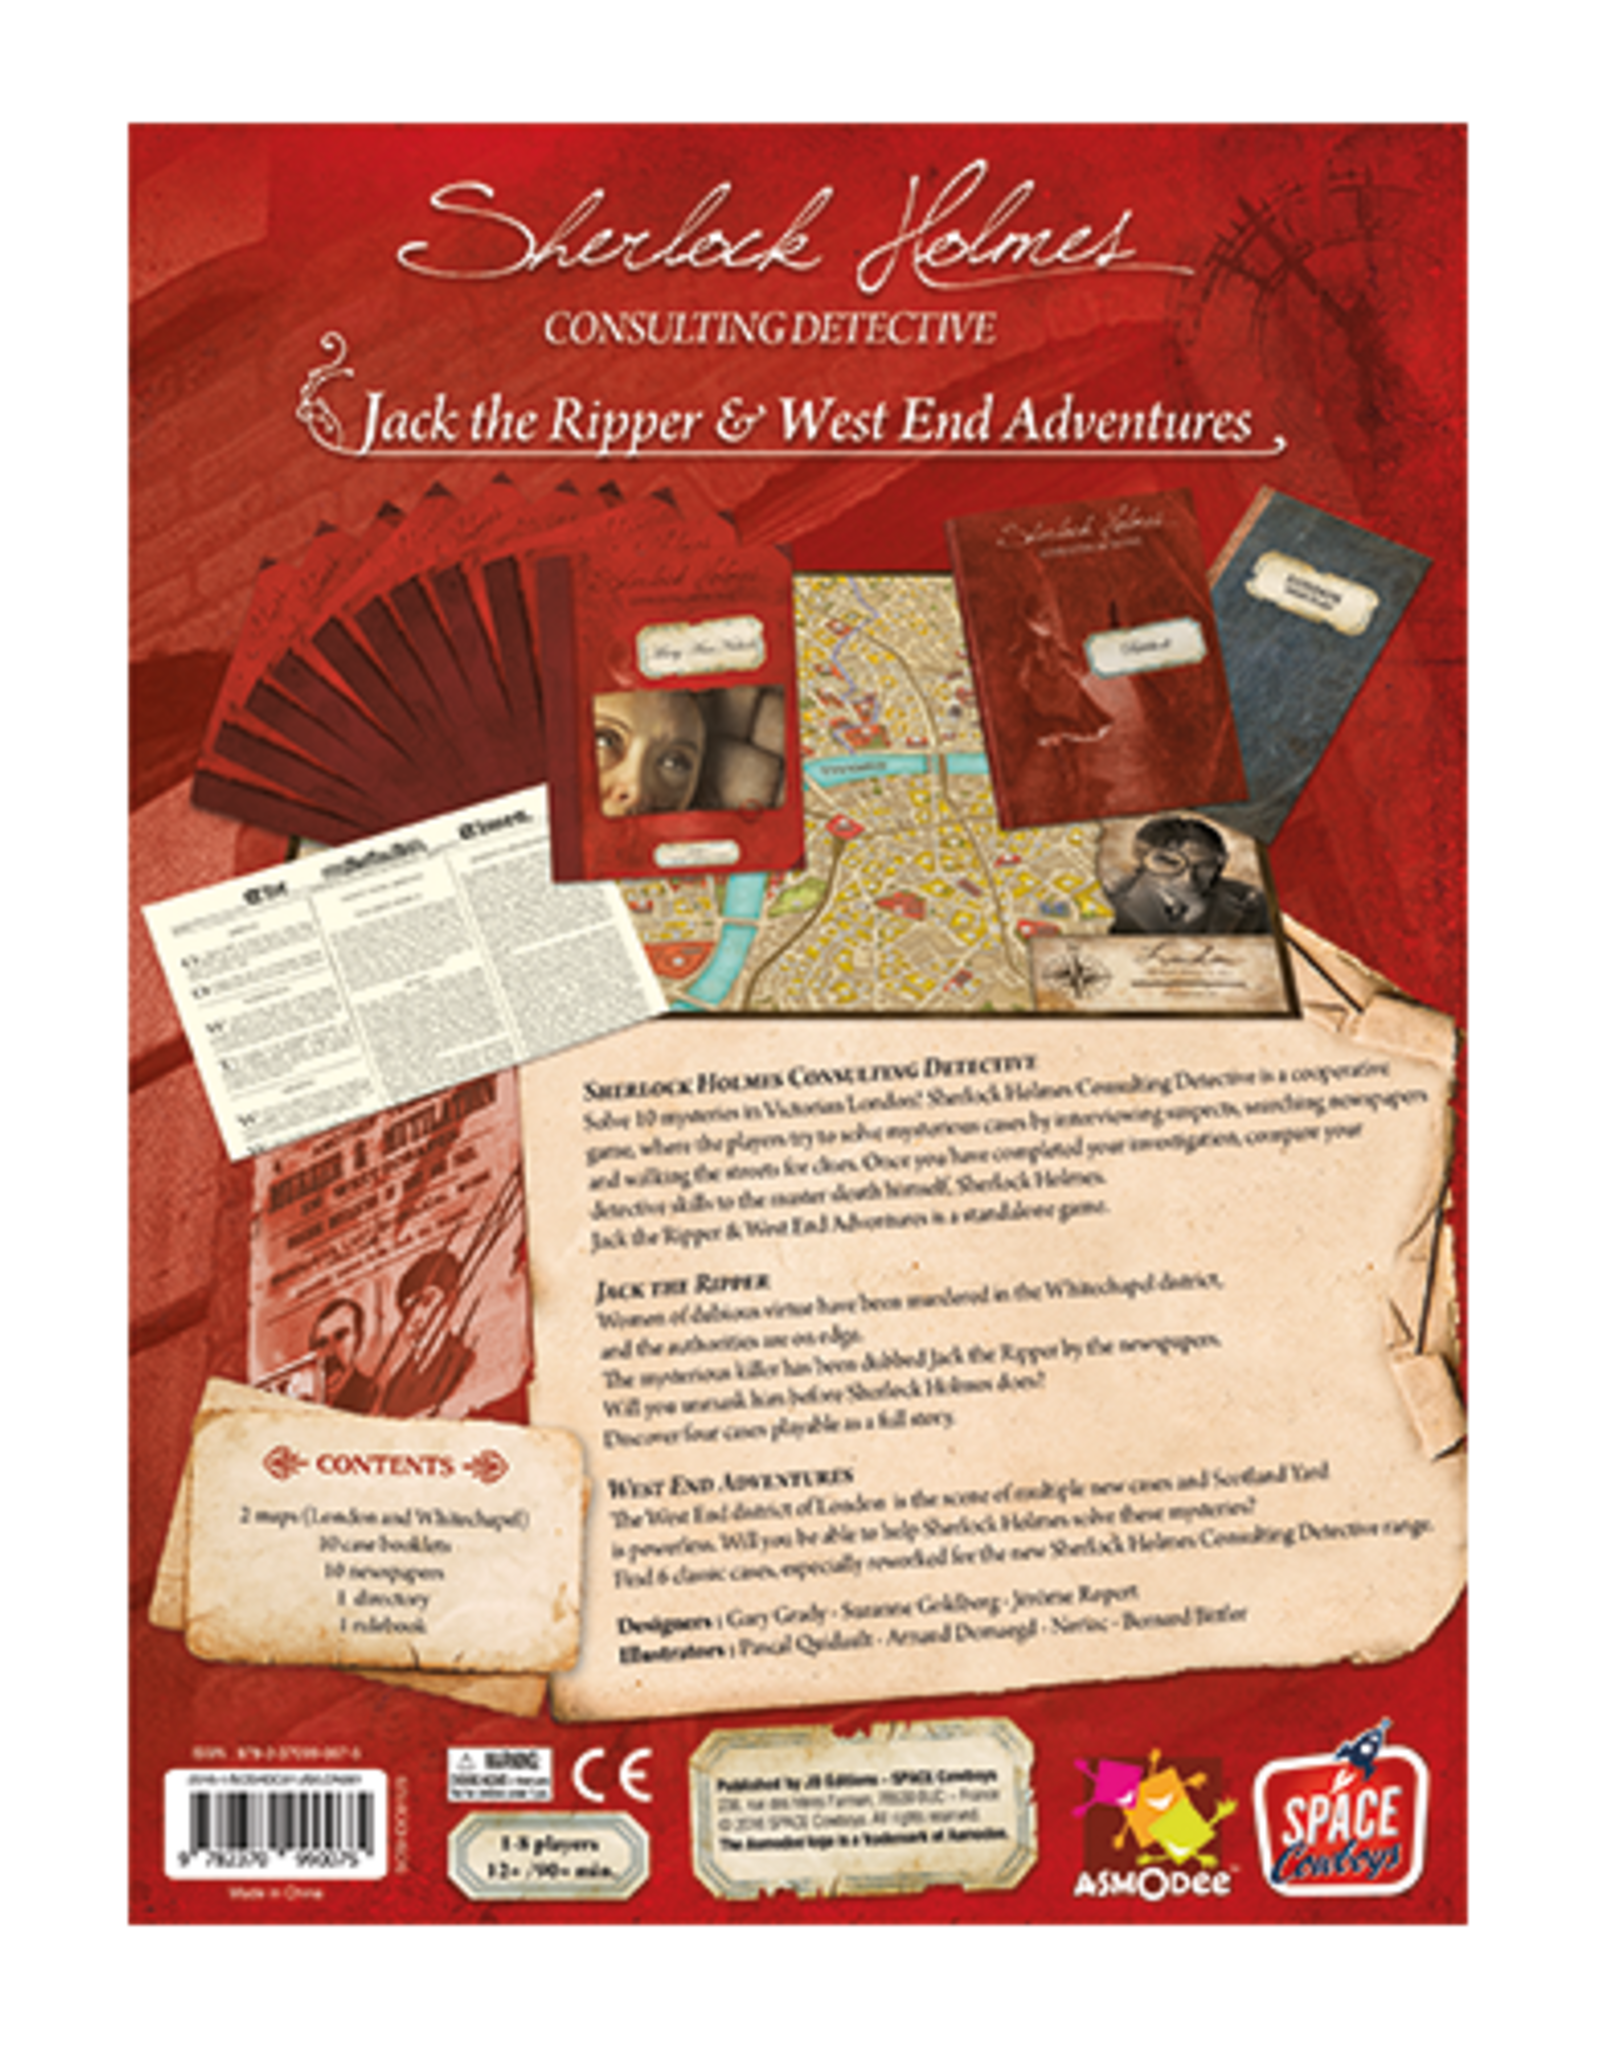 Space Cowboys Sherlock Holmes: Consulting Detective: Jack the Ripper & West End Adventures